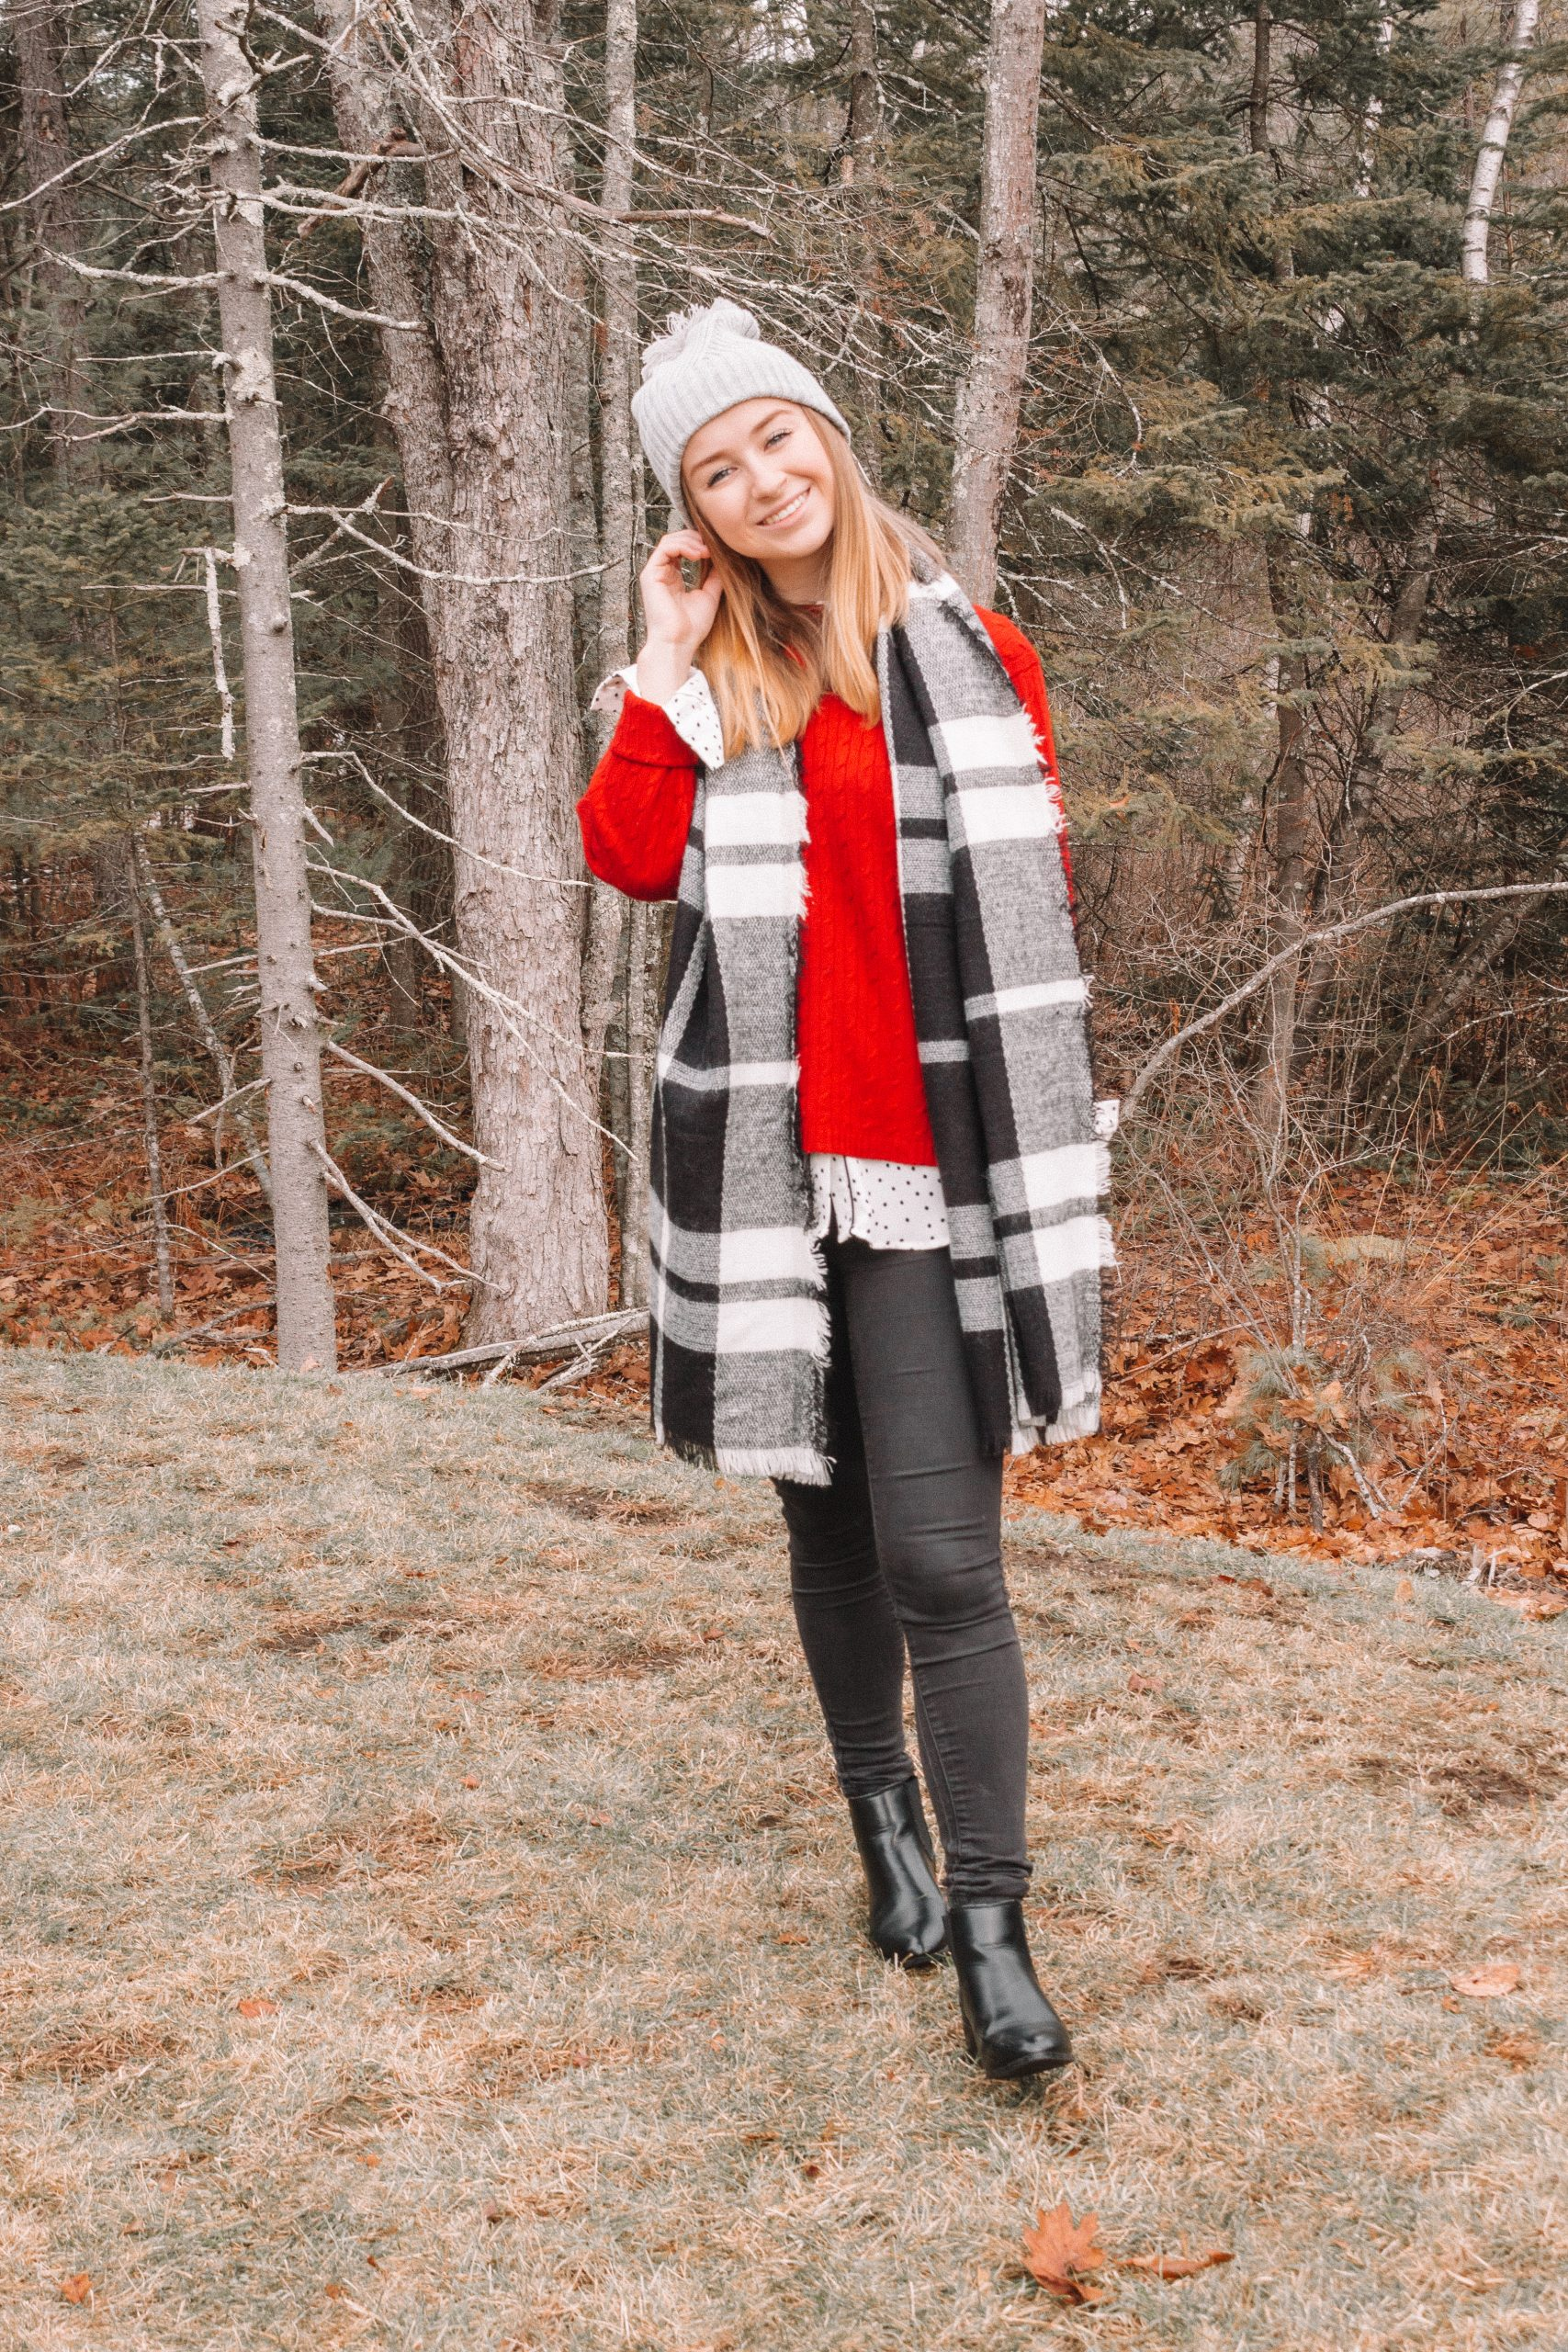 Casual Holiday Look: Plaid Scarves and Red Sweaters | Hey Its Camille Grey #holiday #casuallook #christmas #winter